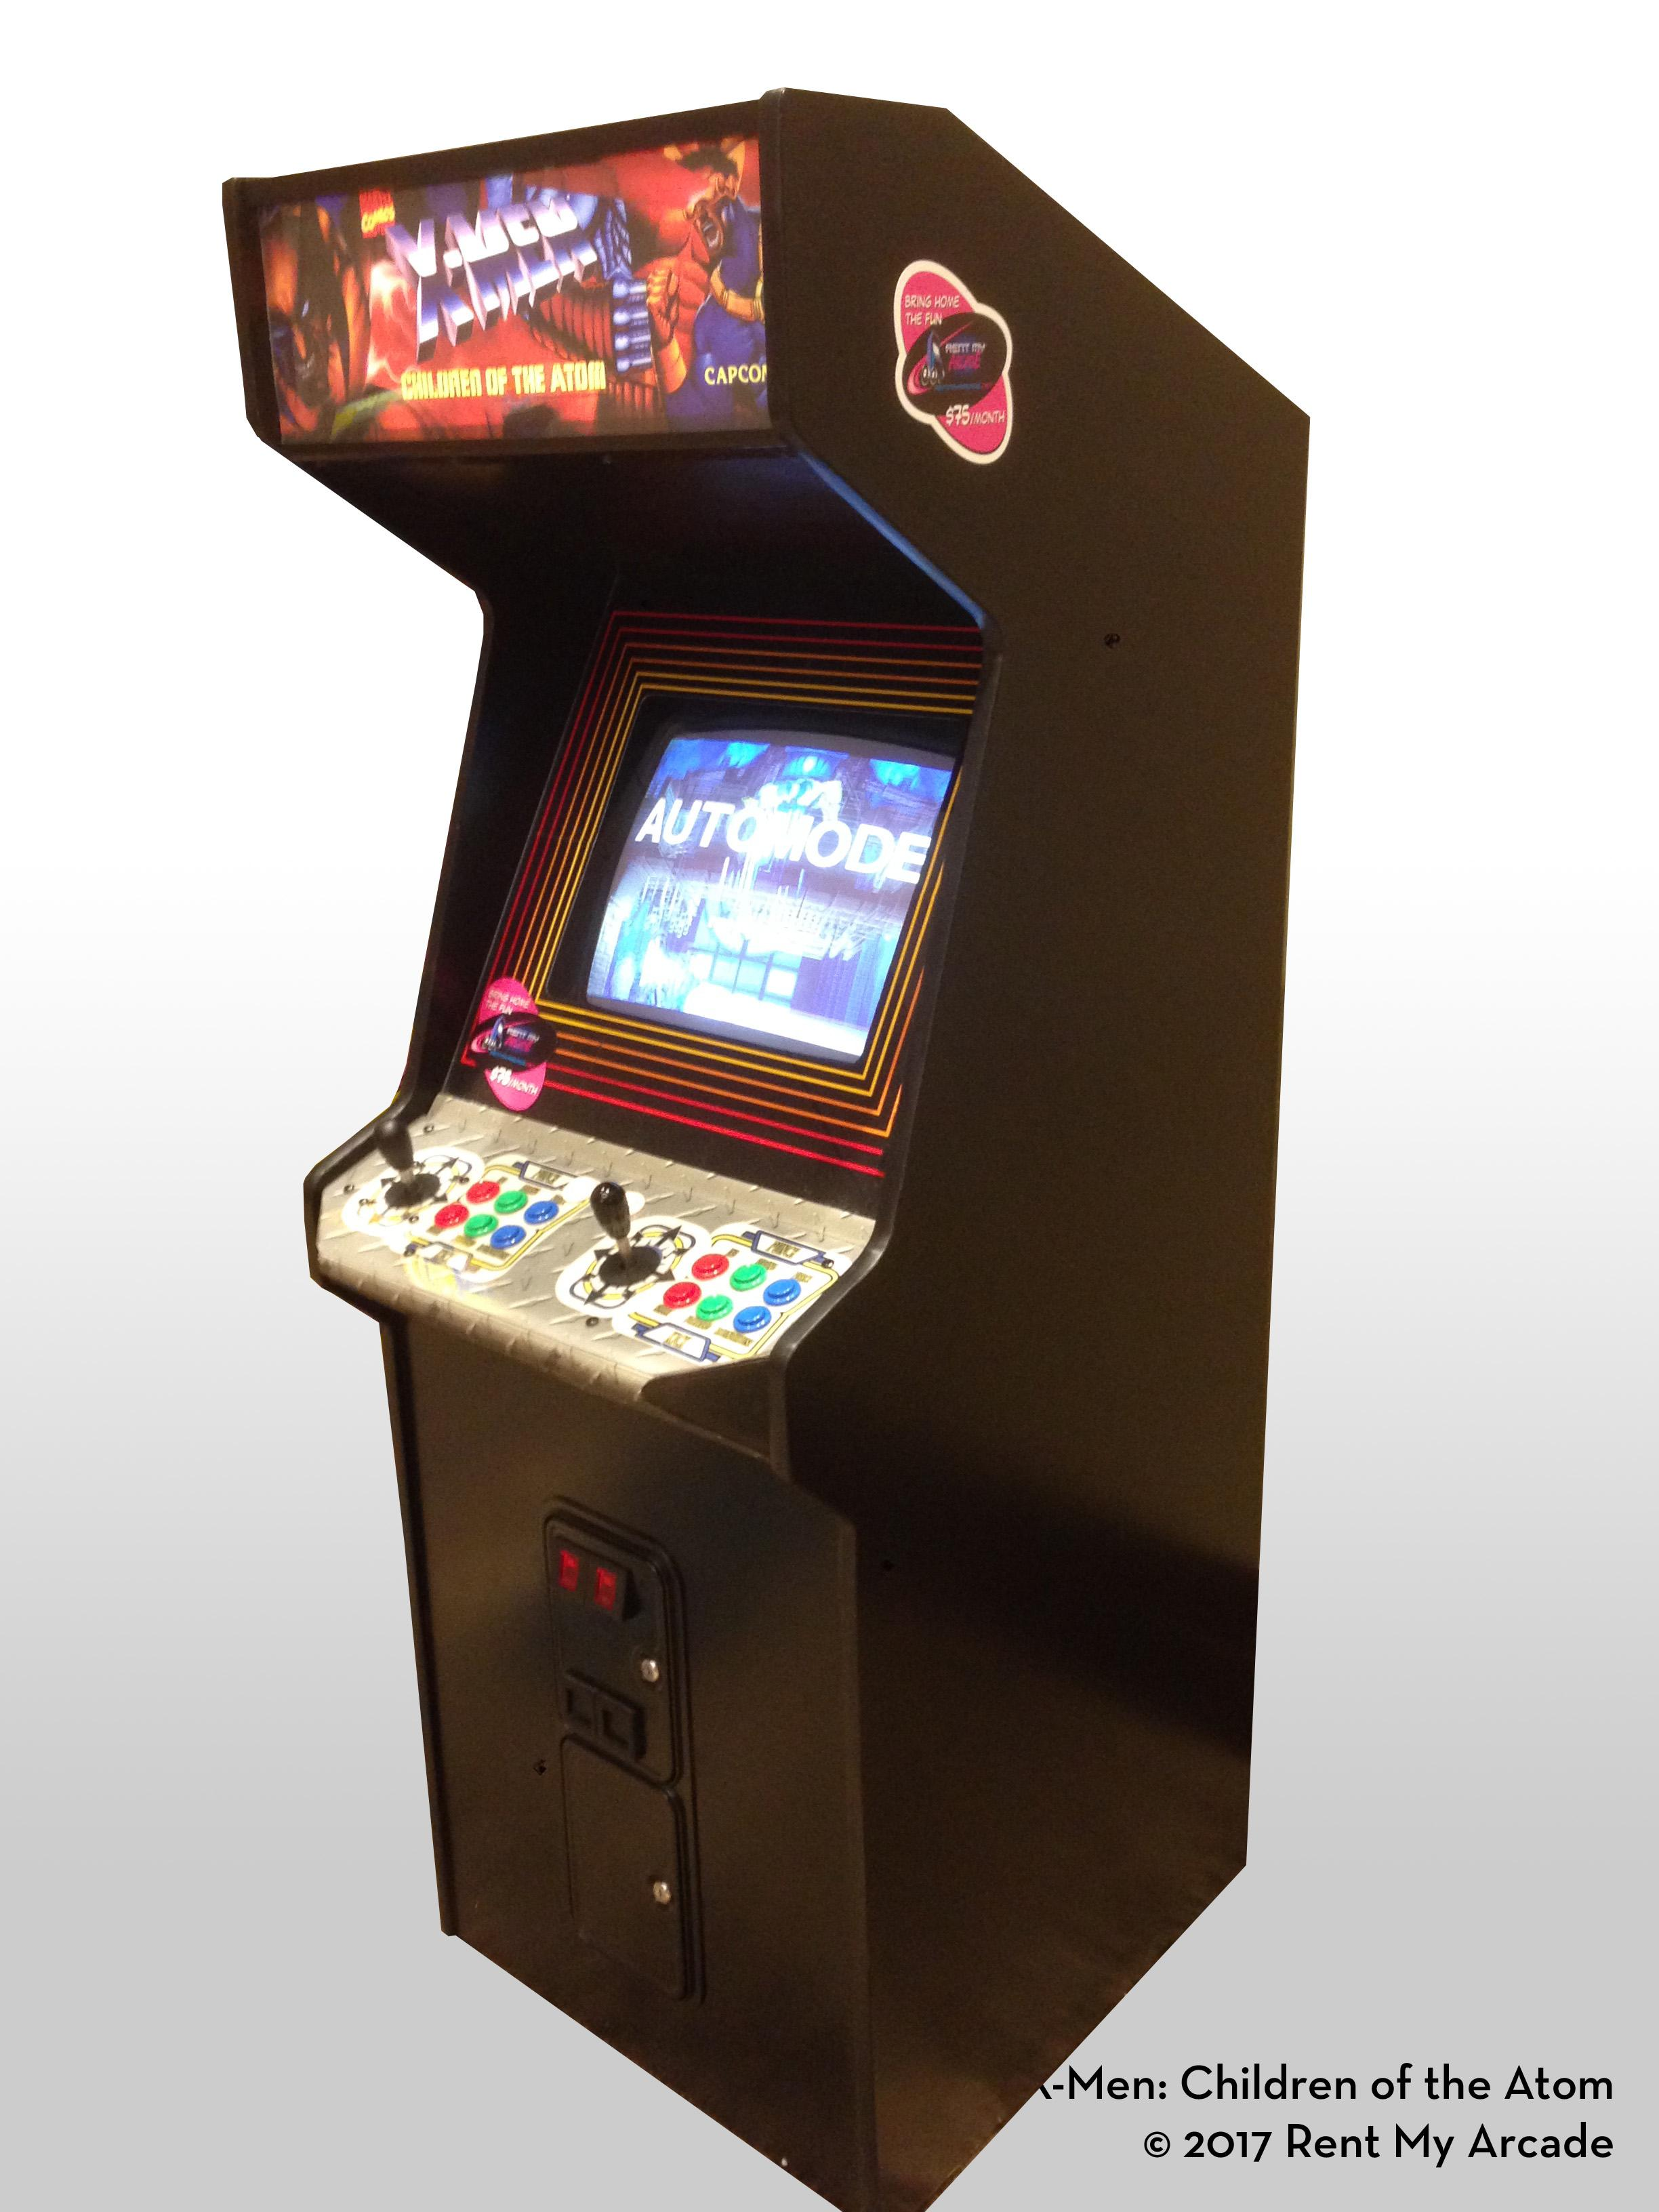 Previous; Next  sc 1 st  Rent My Arcade & X-Men: Children of the Atom | Rent My Arcade